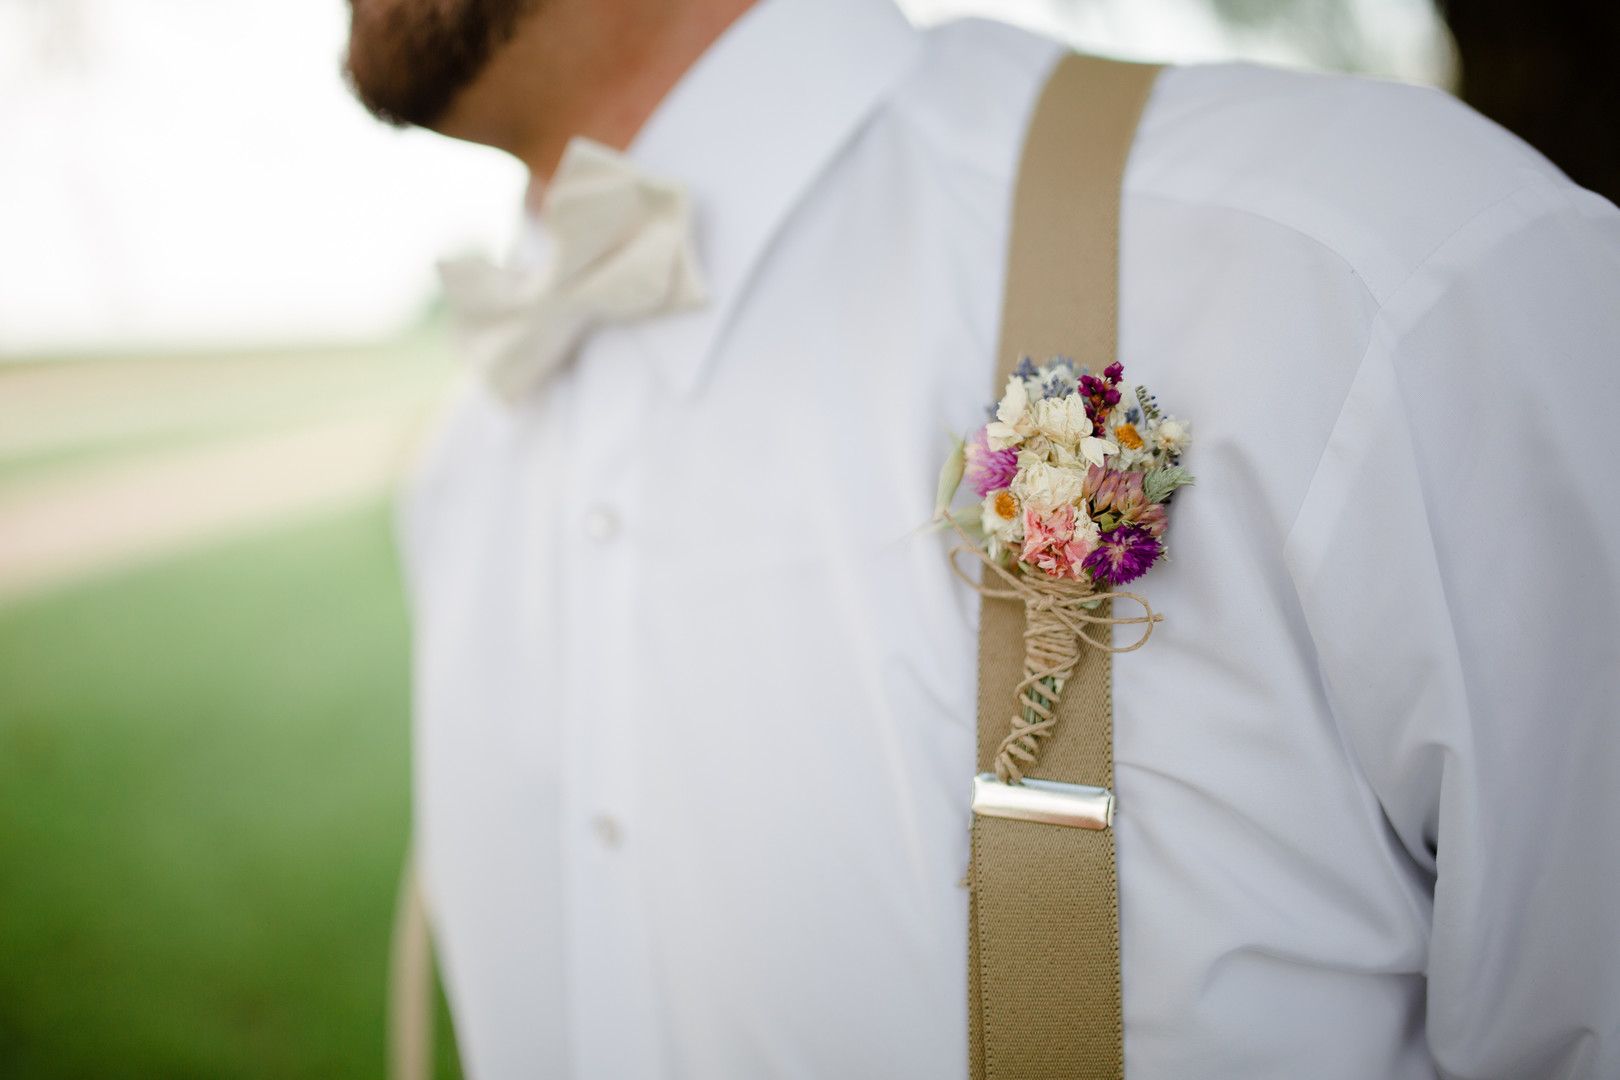 Groom's colorful wedding boutonniere: Rustic country wedding in Minooka, IL captured by Katie Brsan Photography. Visit CHItheeWED.com for more wedding inspiration!